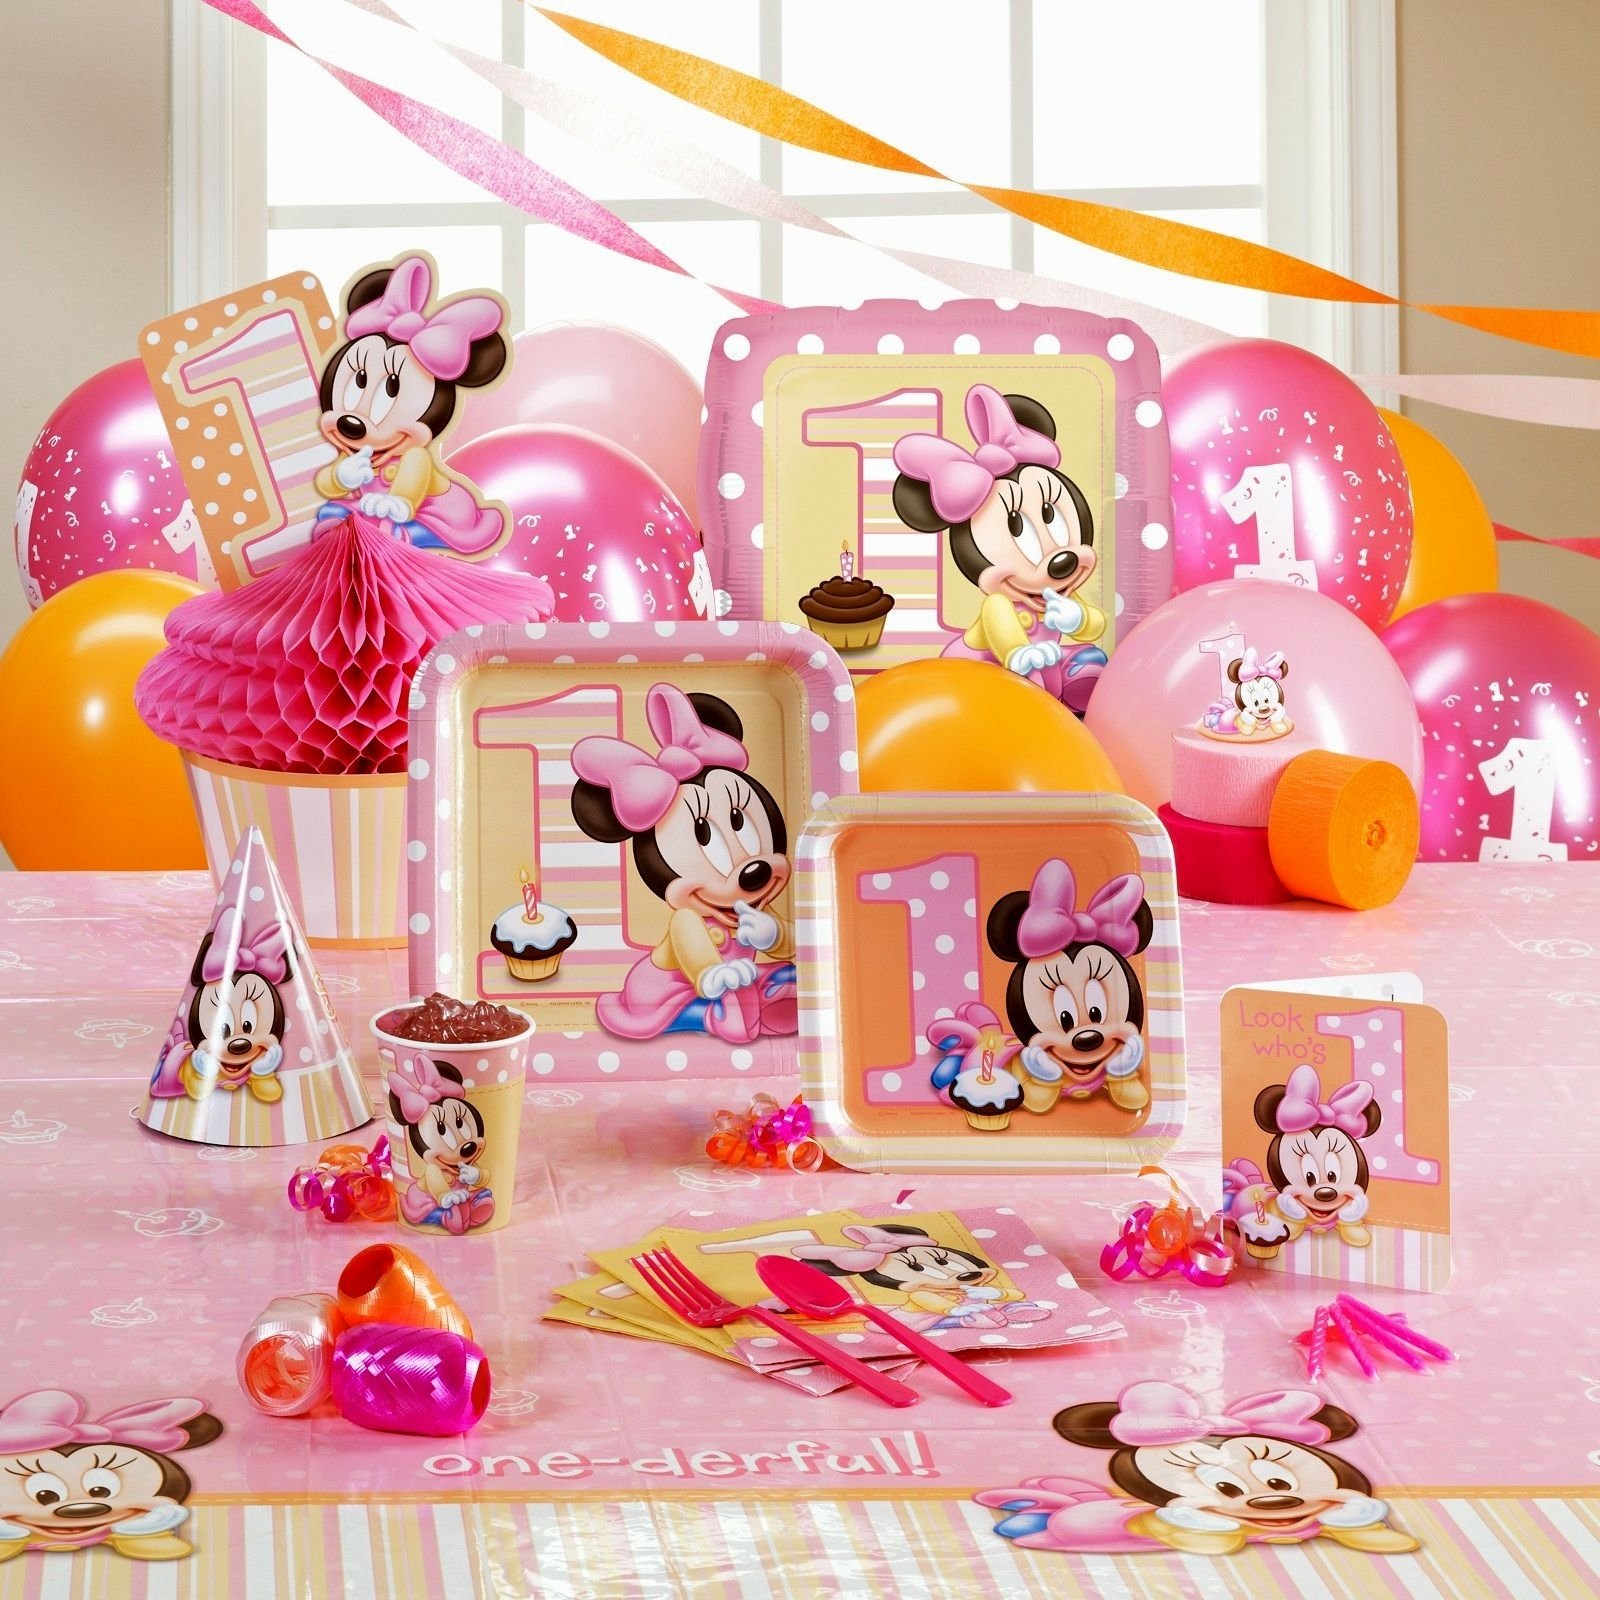 10 Most Recommended Ideas For 1 Year Old Birthday themes birthday 1 year old birthday party ideas philippines in 1 2020